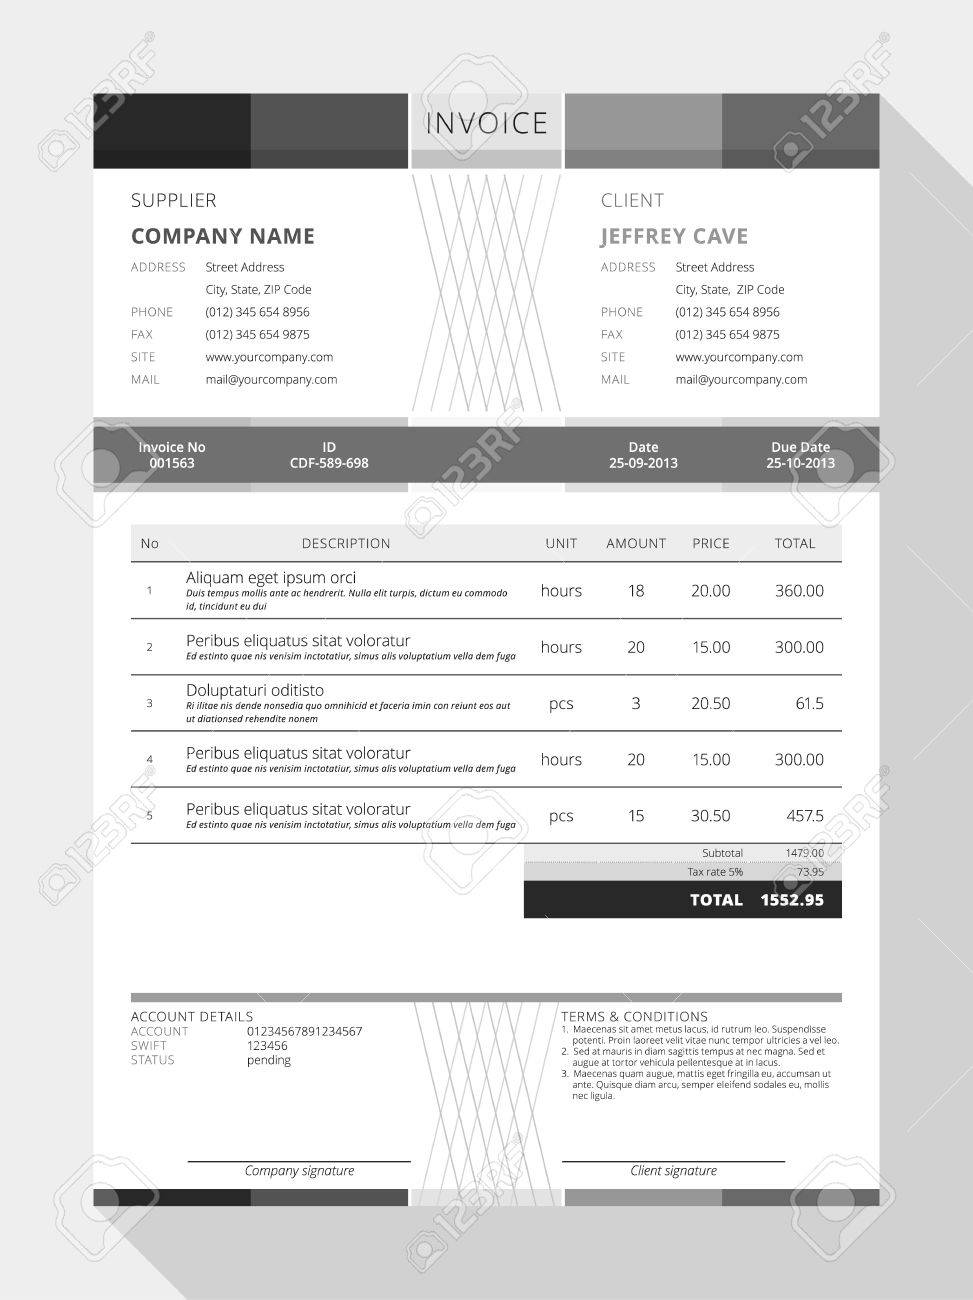 Carsforlessus  Pleasant Design An Invoice  Professional Graphic Design Invoice  With Remarkable Vector Customizable Invoice Form Template Design Vector   Design An Invoice With Beautiful Invoices Template Free Also Factor Invoice In Addition Invoice Apps For Android And Free Email Invoice Template As Well As Making Invoice Additionally Vat Tax Invoice Format In Excel From Happytomco With Carsforlessus  Remarkable Design An Invoice  Professional Graphic Design Invoice  With Beautiful Vector Customizable Invoice Form Template Design Vector   Design An Invoice And Pleasant Invoices Template Free Also Factor Invoice In Addition Invoice Apps For Android From Happytomco